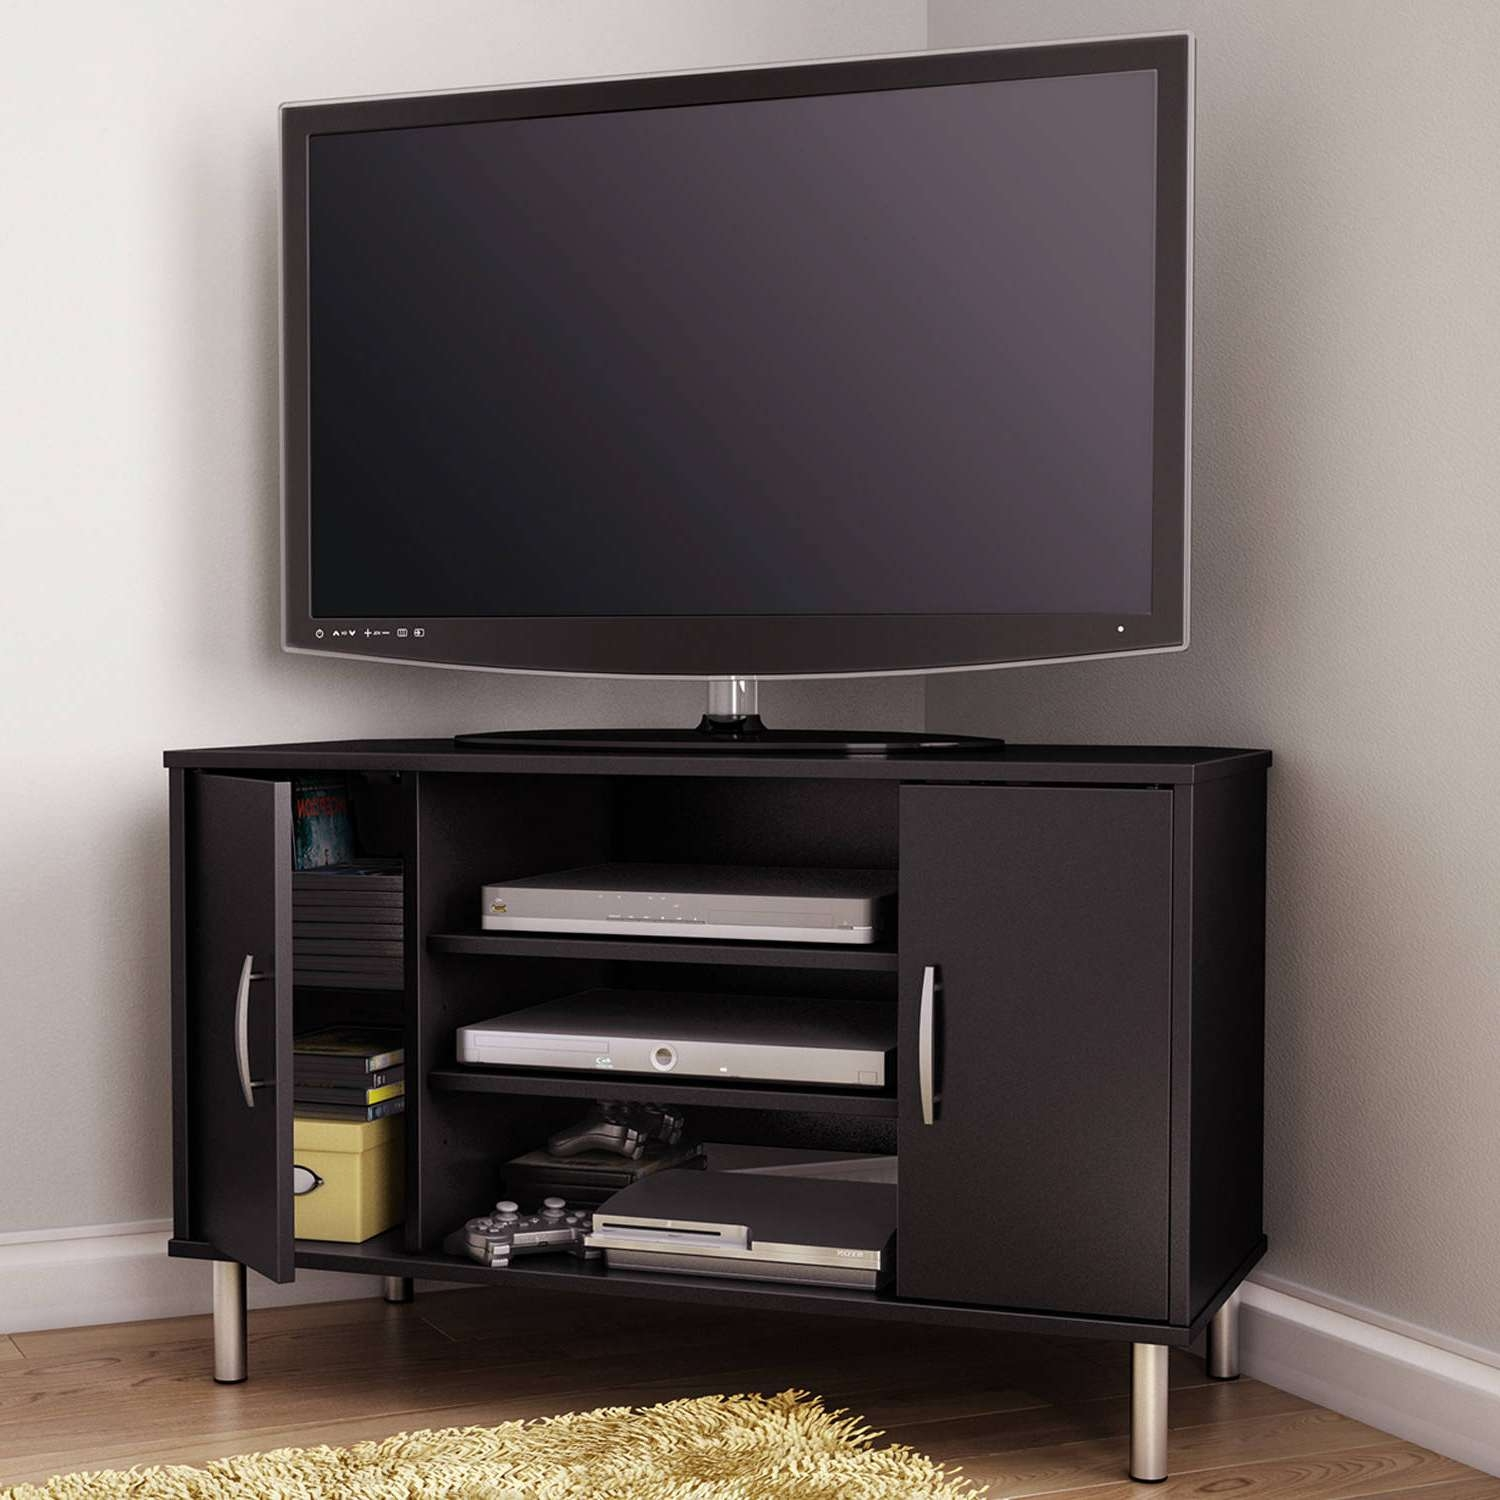 Tv Stand : 34 Impressive Flat Screen Corner Tv Stand Photo Regarding Cheap Corner Tv Stands For Flat Screen (View 12 of 20)